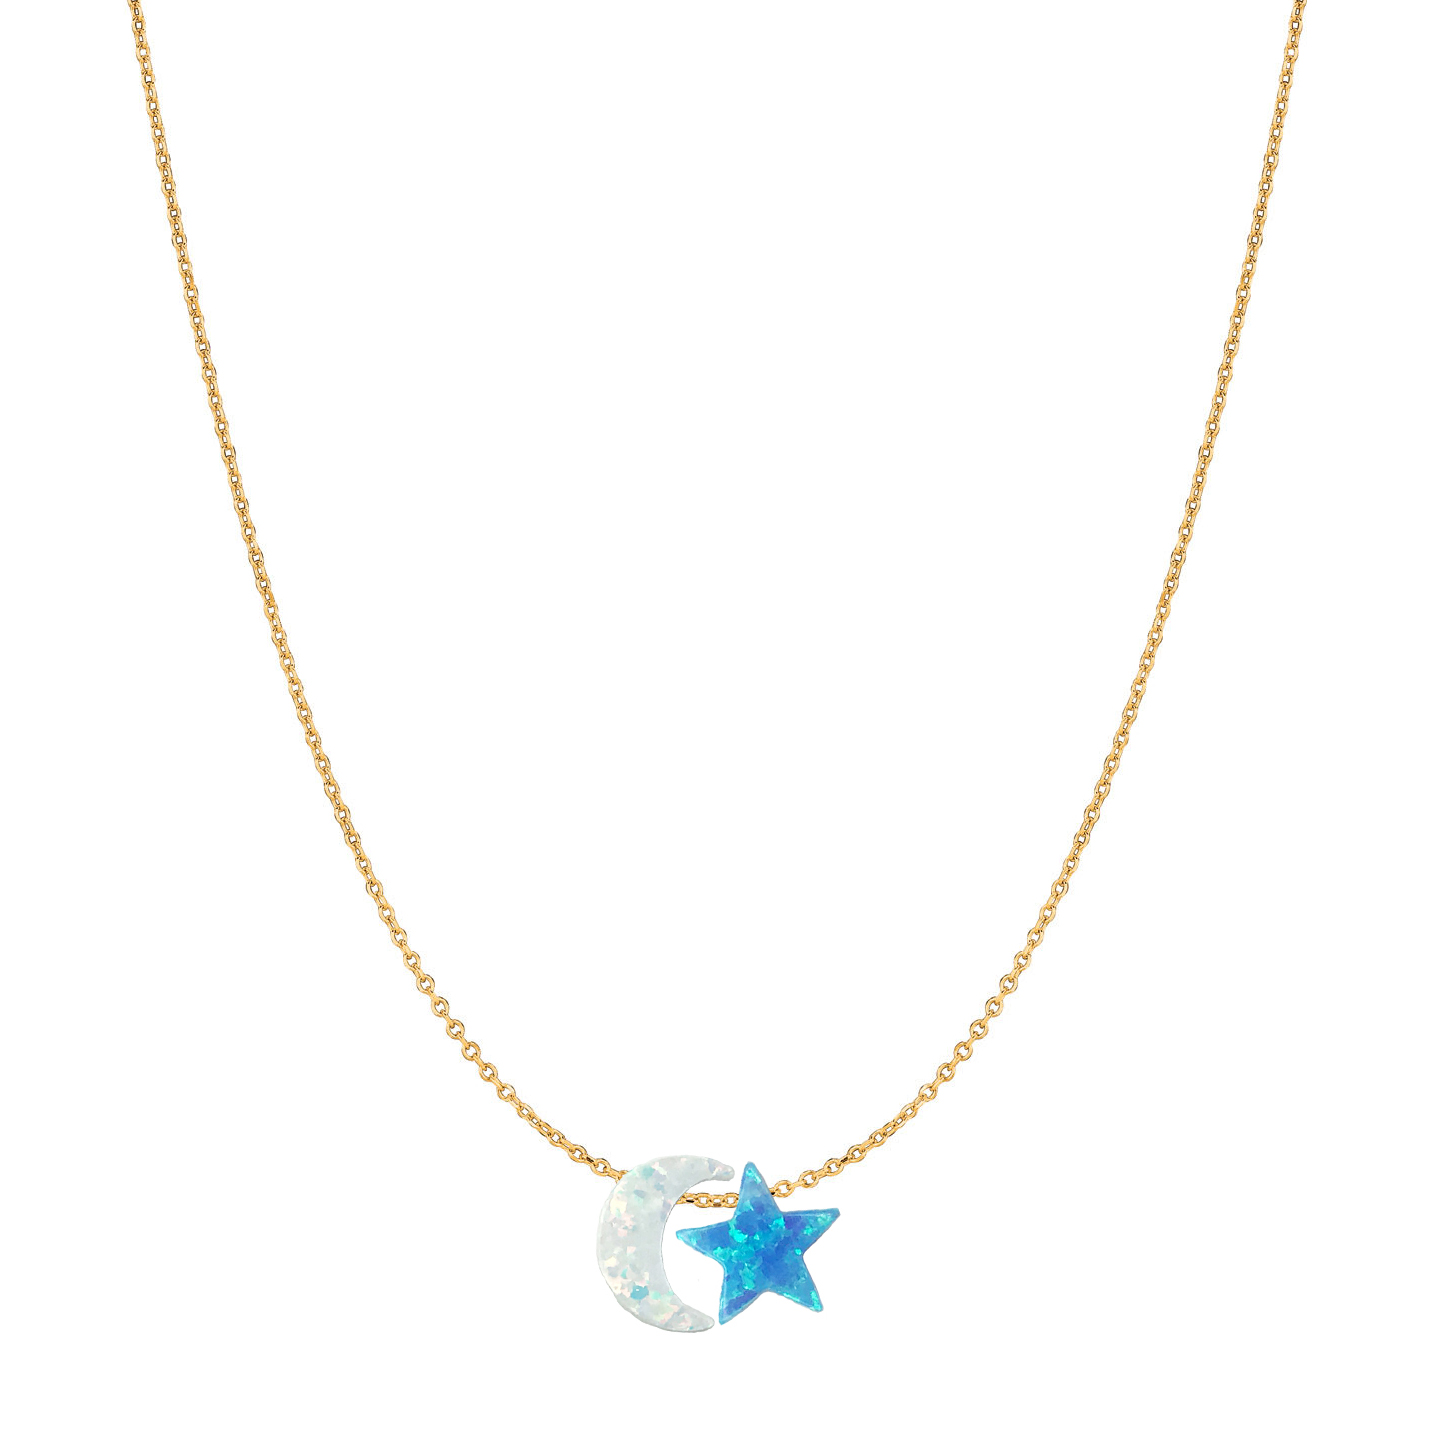 14 Karat Gold Bright Blue Star and Pure White Moon Opal Necklace